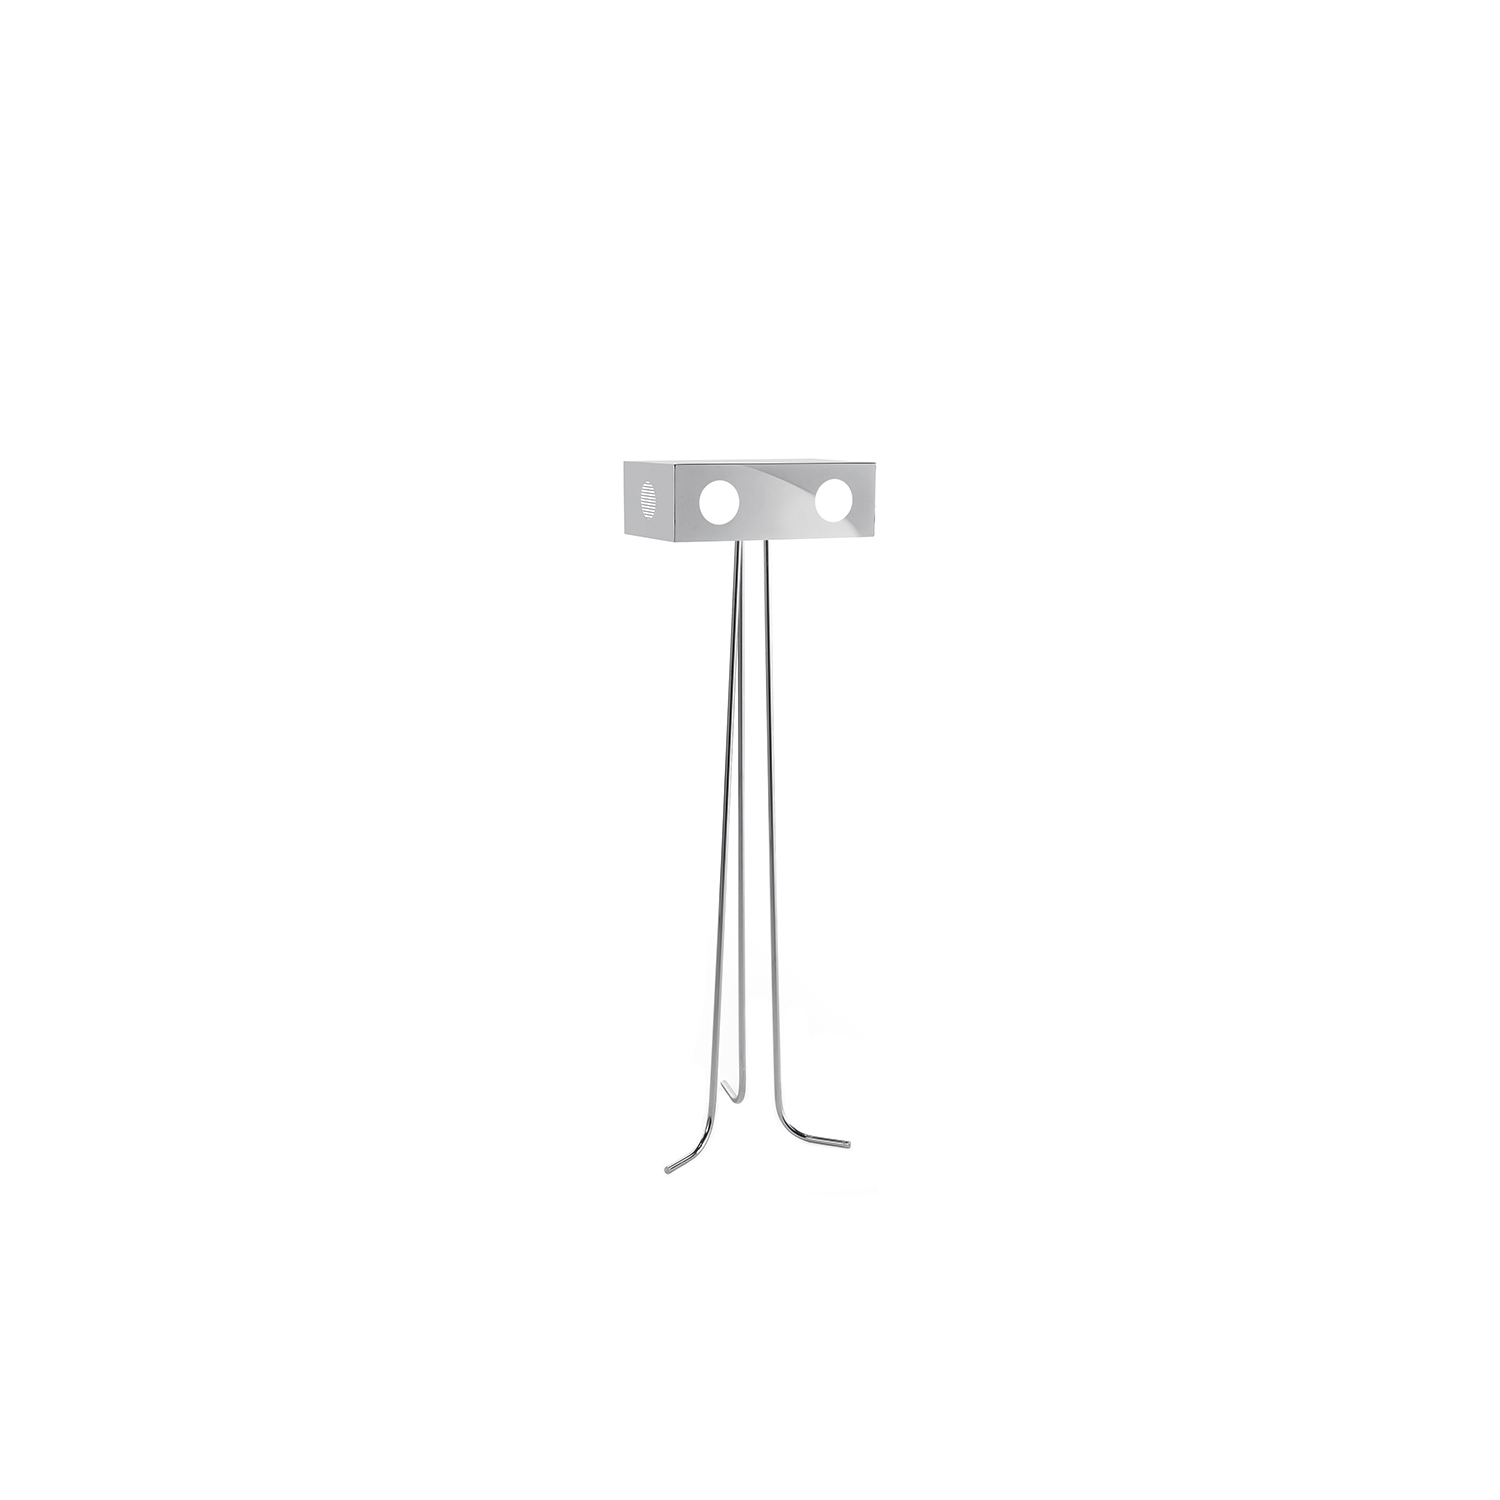 Threeve Floor Lamp - Threeve comes from a JCP universe's science-fiction movie, where notions of the past become the future and what we perceive as history has yet to be seen. Looking like little robots with an unxpected soul, they light the unseen and become characters able to transform everyday life.  | Matter of Stuff